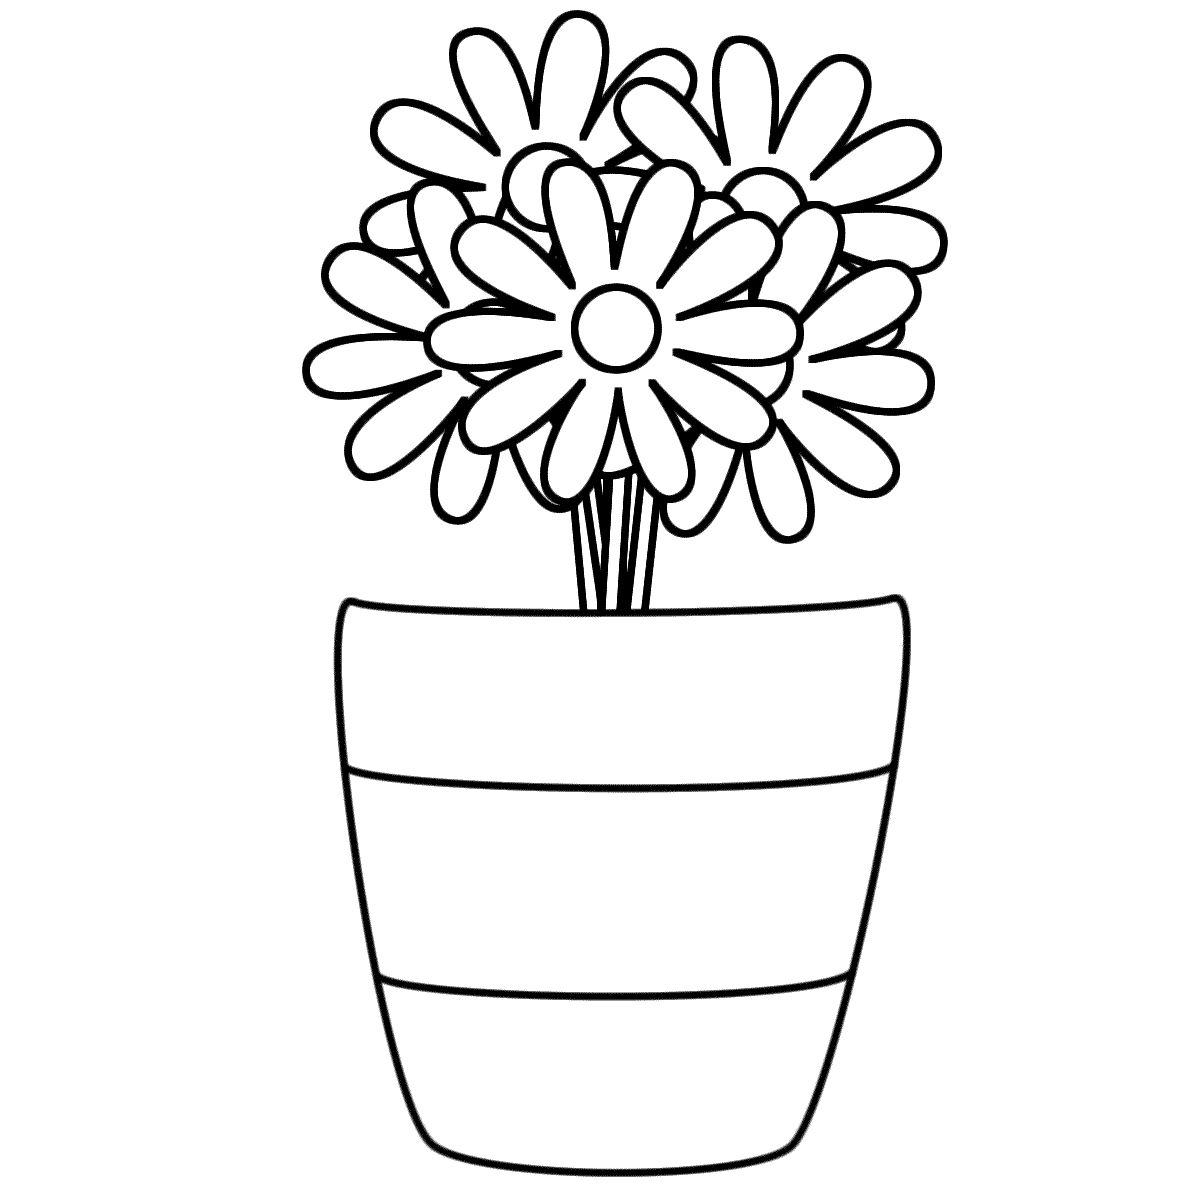 vase with flowers coloring page - coloring pages of flowers in a vase vase pinterest